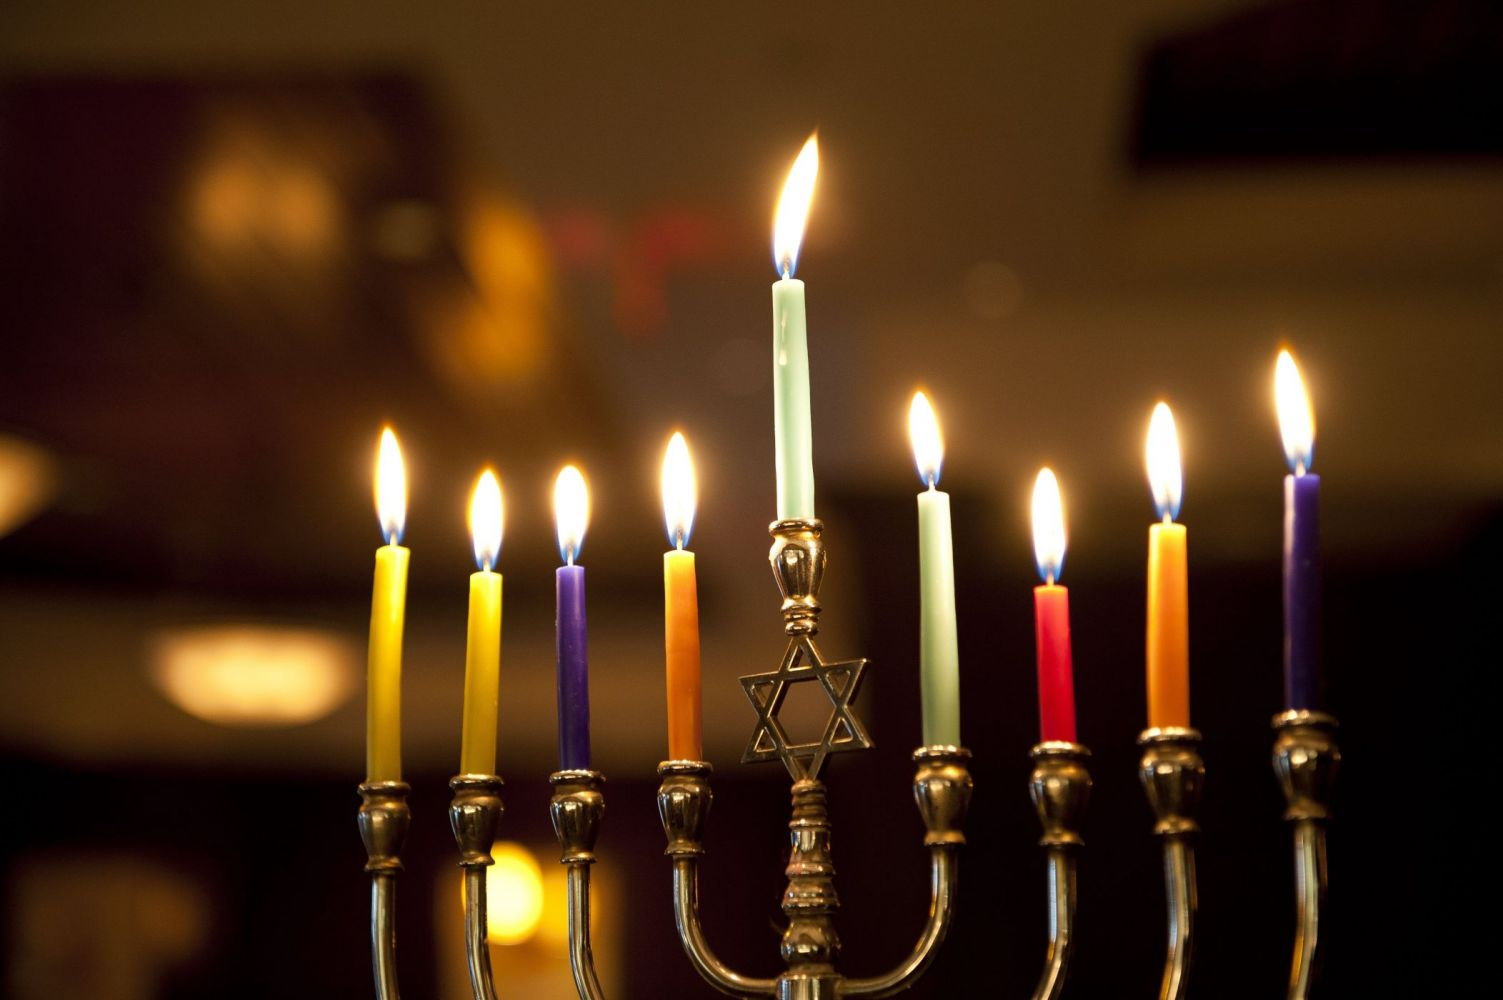 The Hanukkah menorah also chanukiah or hanukkiah Hebrew מנורת חנוכה menorat ḥanukkah pl menorot also Hebrew חנכיה